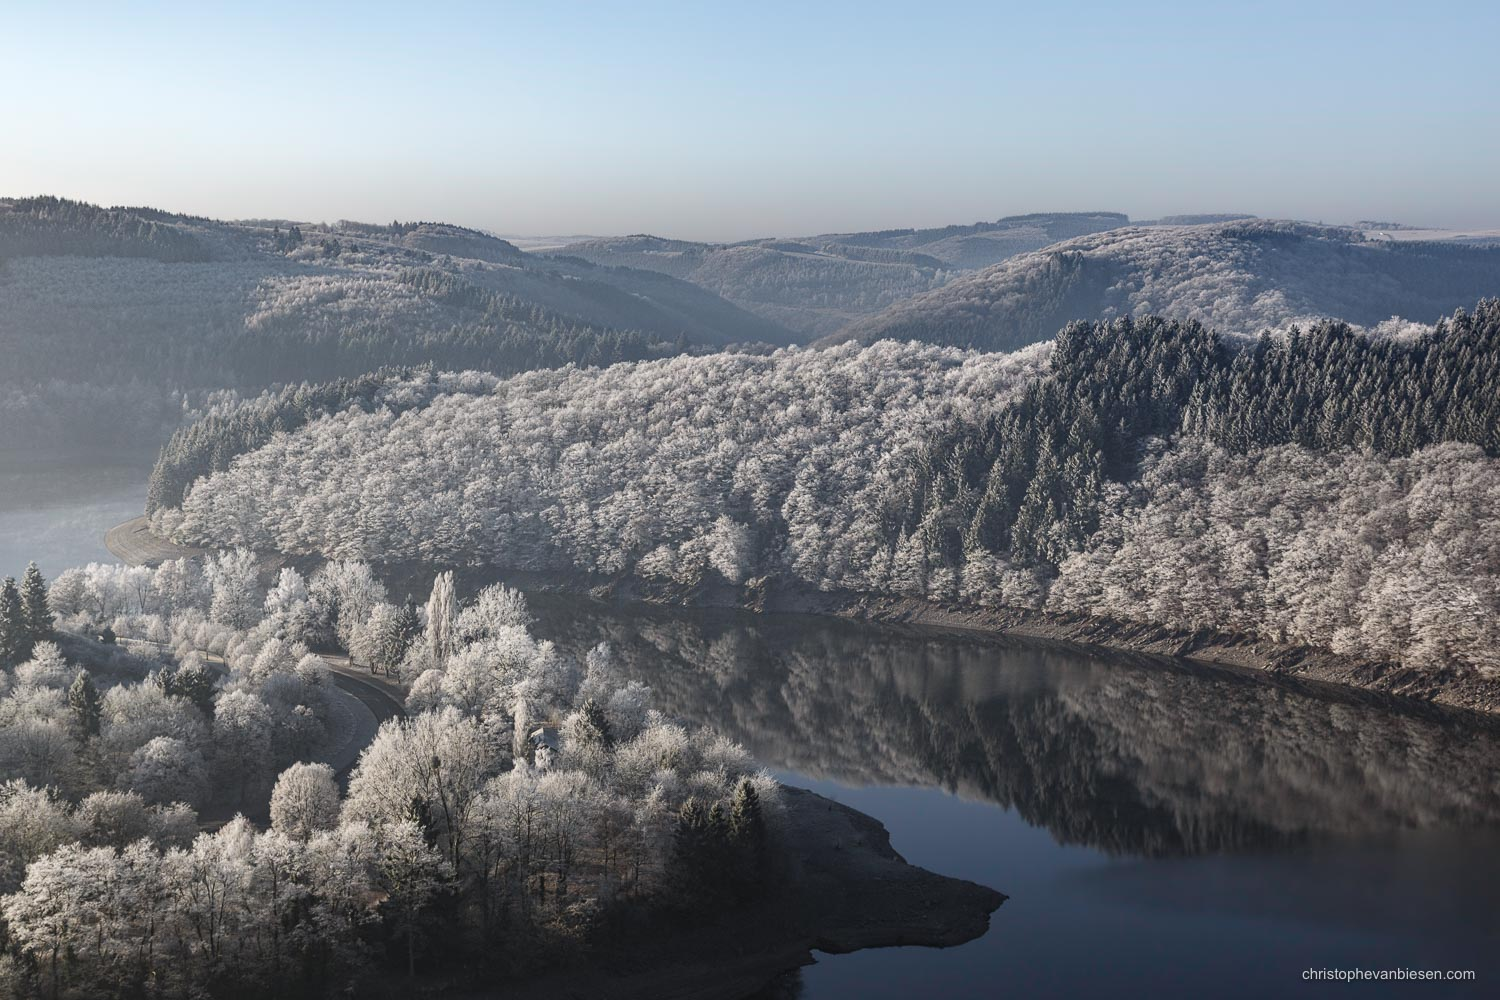 Snow in Luxembourg - Winter at the Upper-Sure Lake in the Grand-Duchy of Snow in Luxembourg - Along White Shores